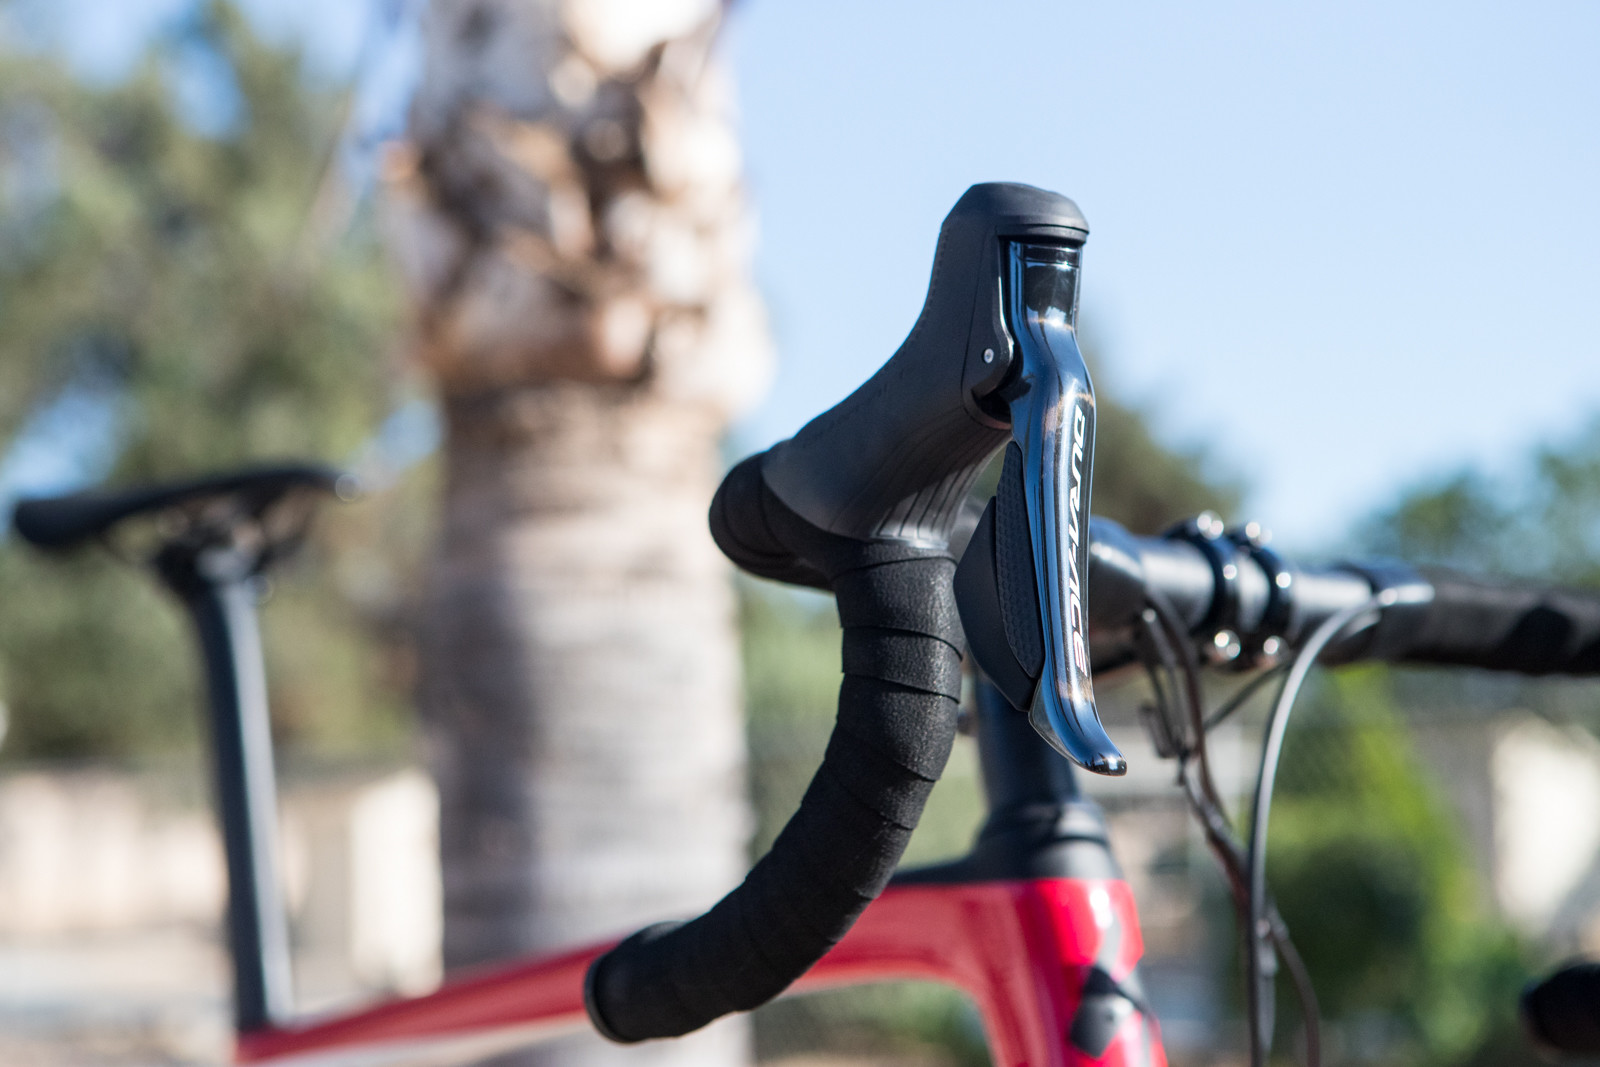 Shifting is handled by Shimano's best, their Dura-Ace Di2. The Di moniker stands for electronic shifting and running a small wire from the hoods down to the front and rear derailleur, Shimano actuates each to do their job just by a small press of the paddles. The right side triggers control the rear shifting while the two triggers on the left hood control the front cog shifting.